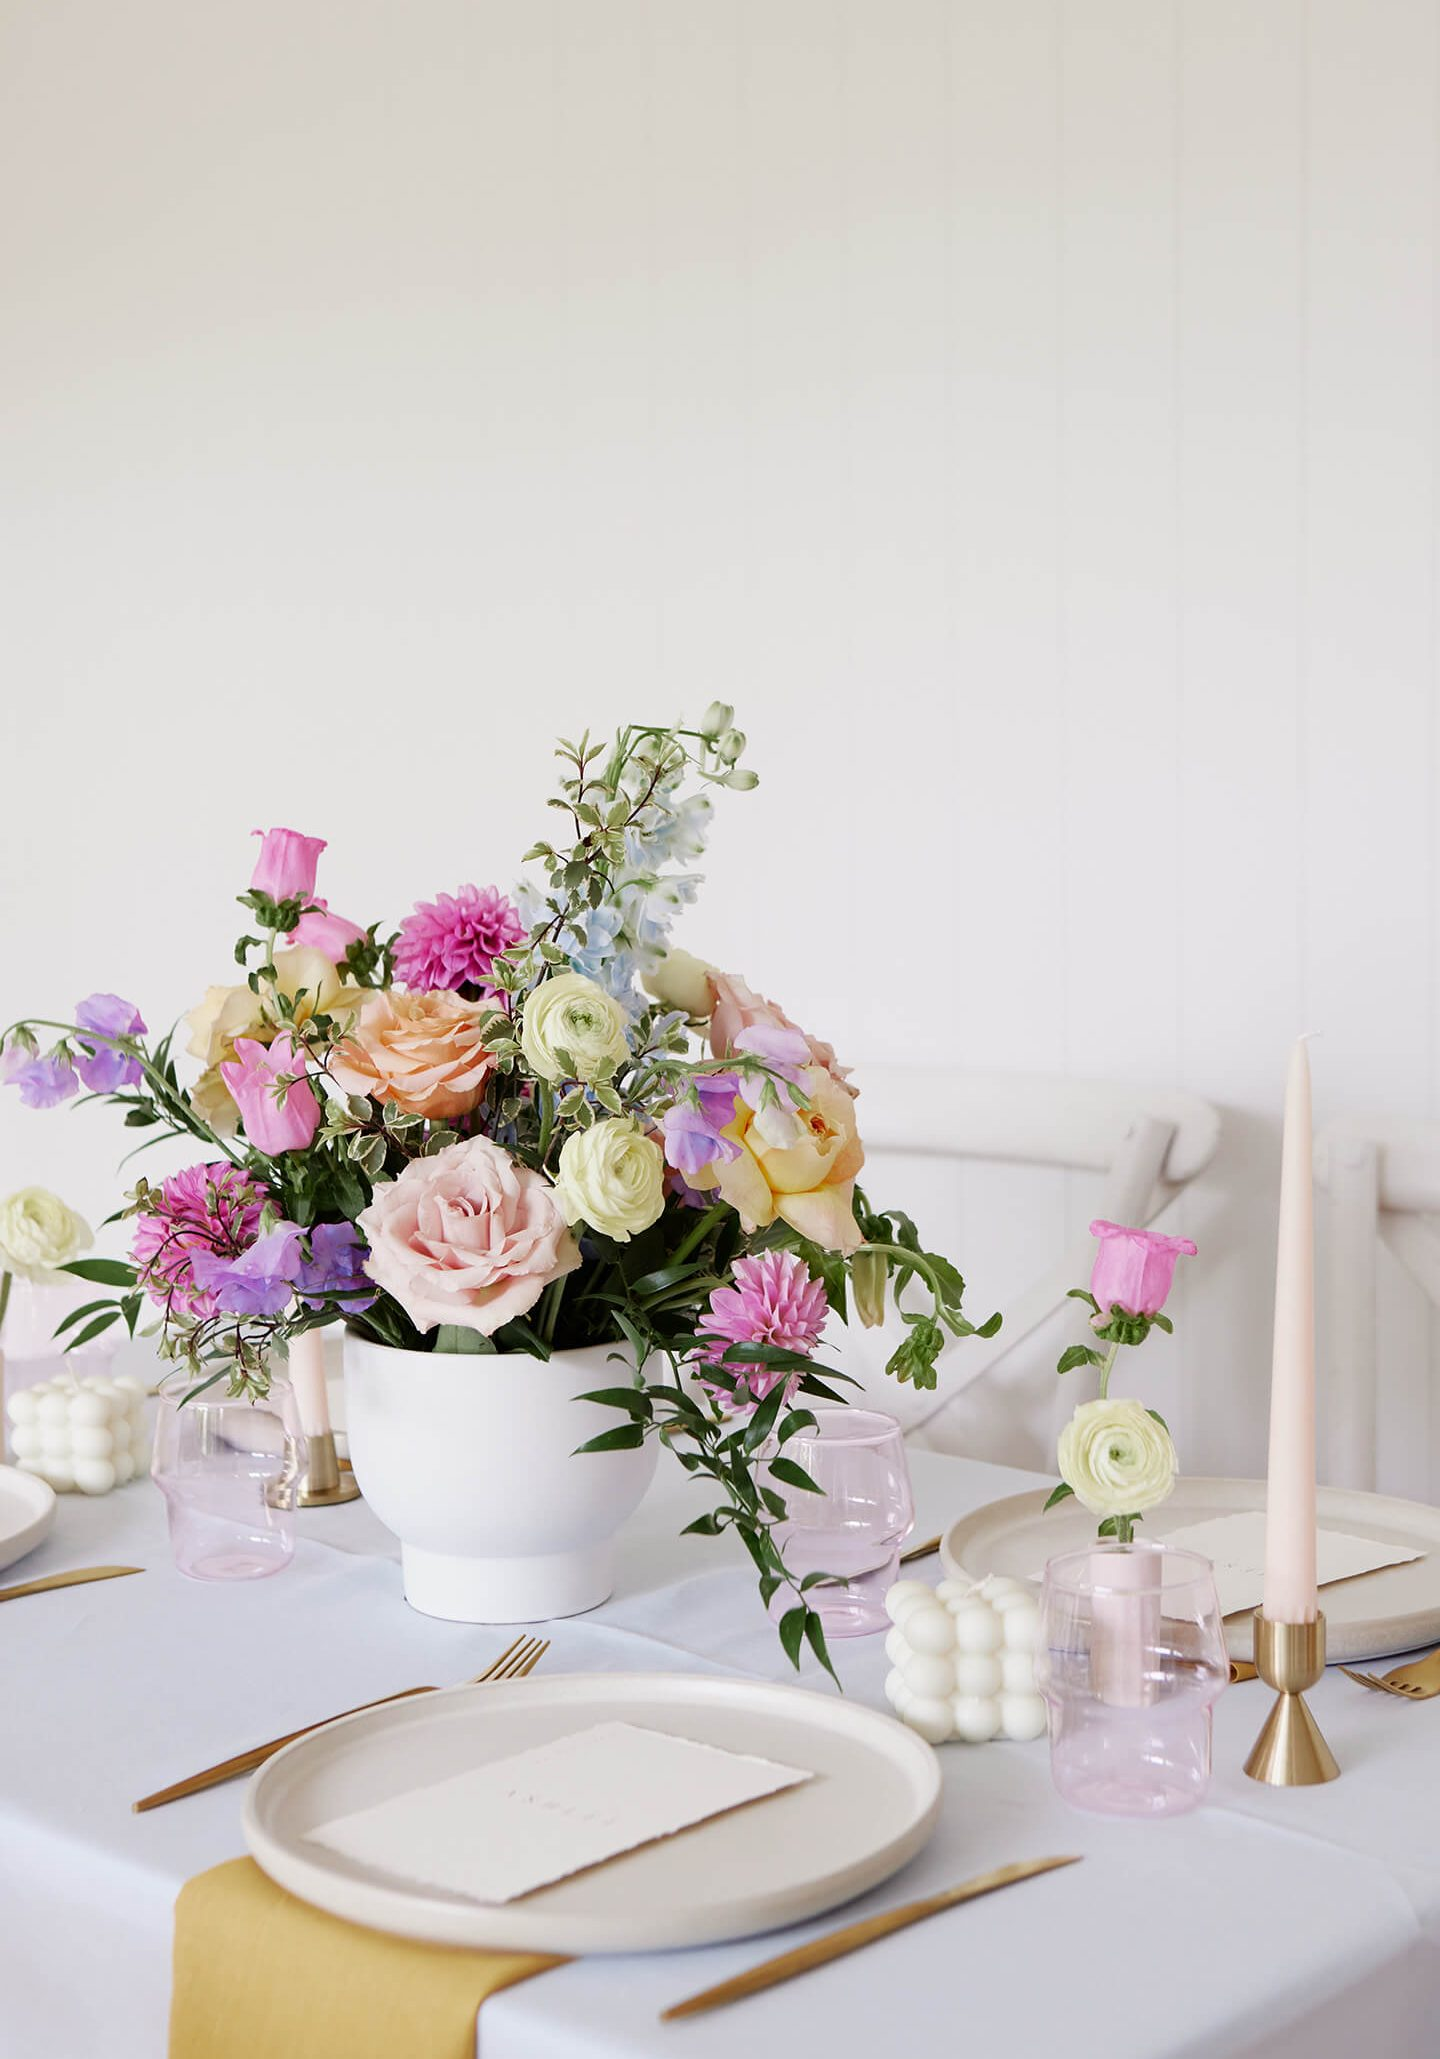 event styling found collective seb paynter